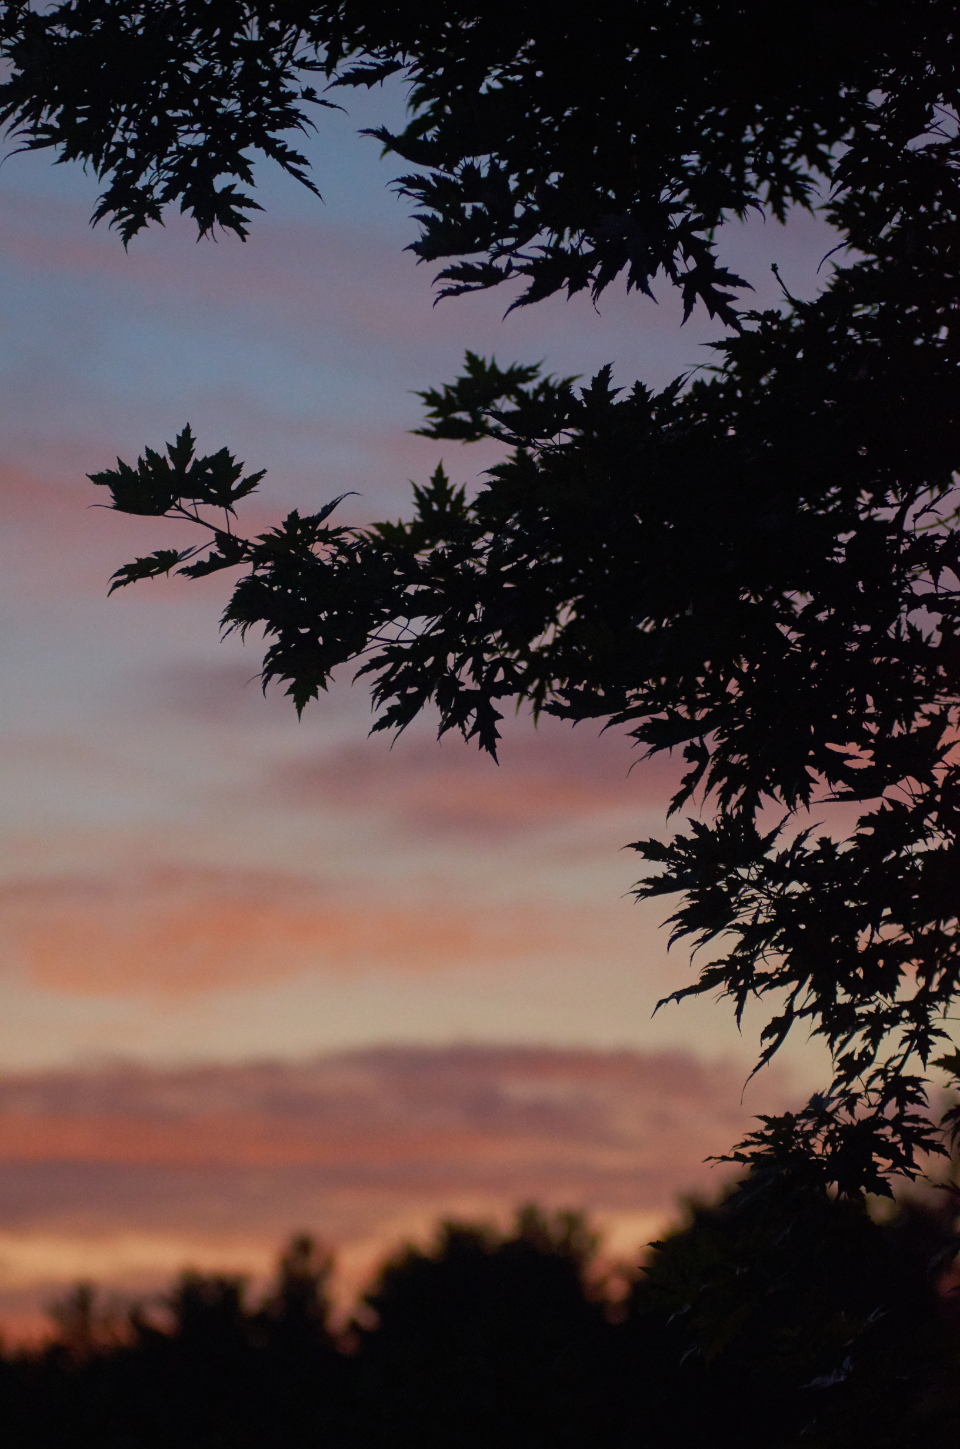 sunset trees sunrise vibrant clouds forest silhouette sky nature outdoors scenic view dusk